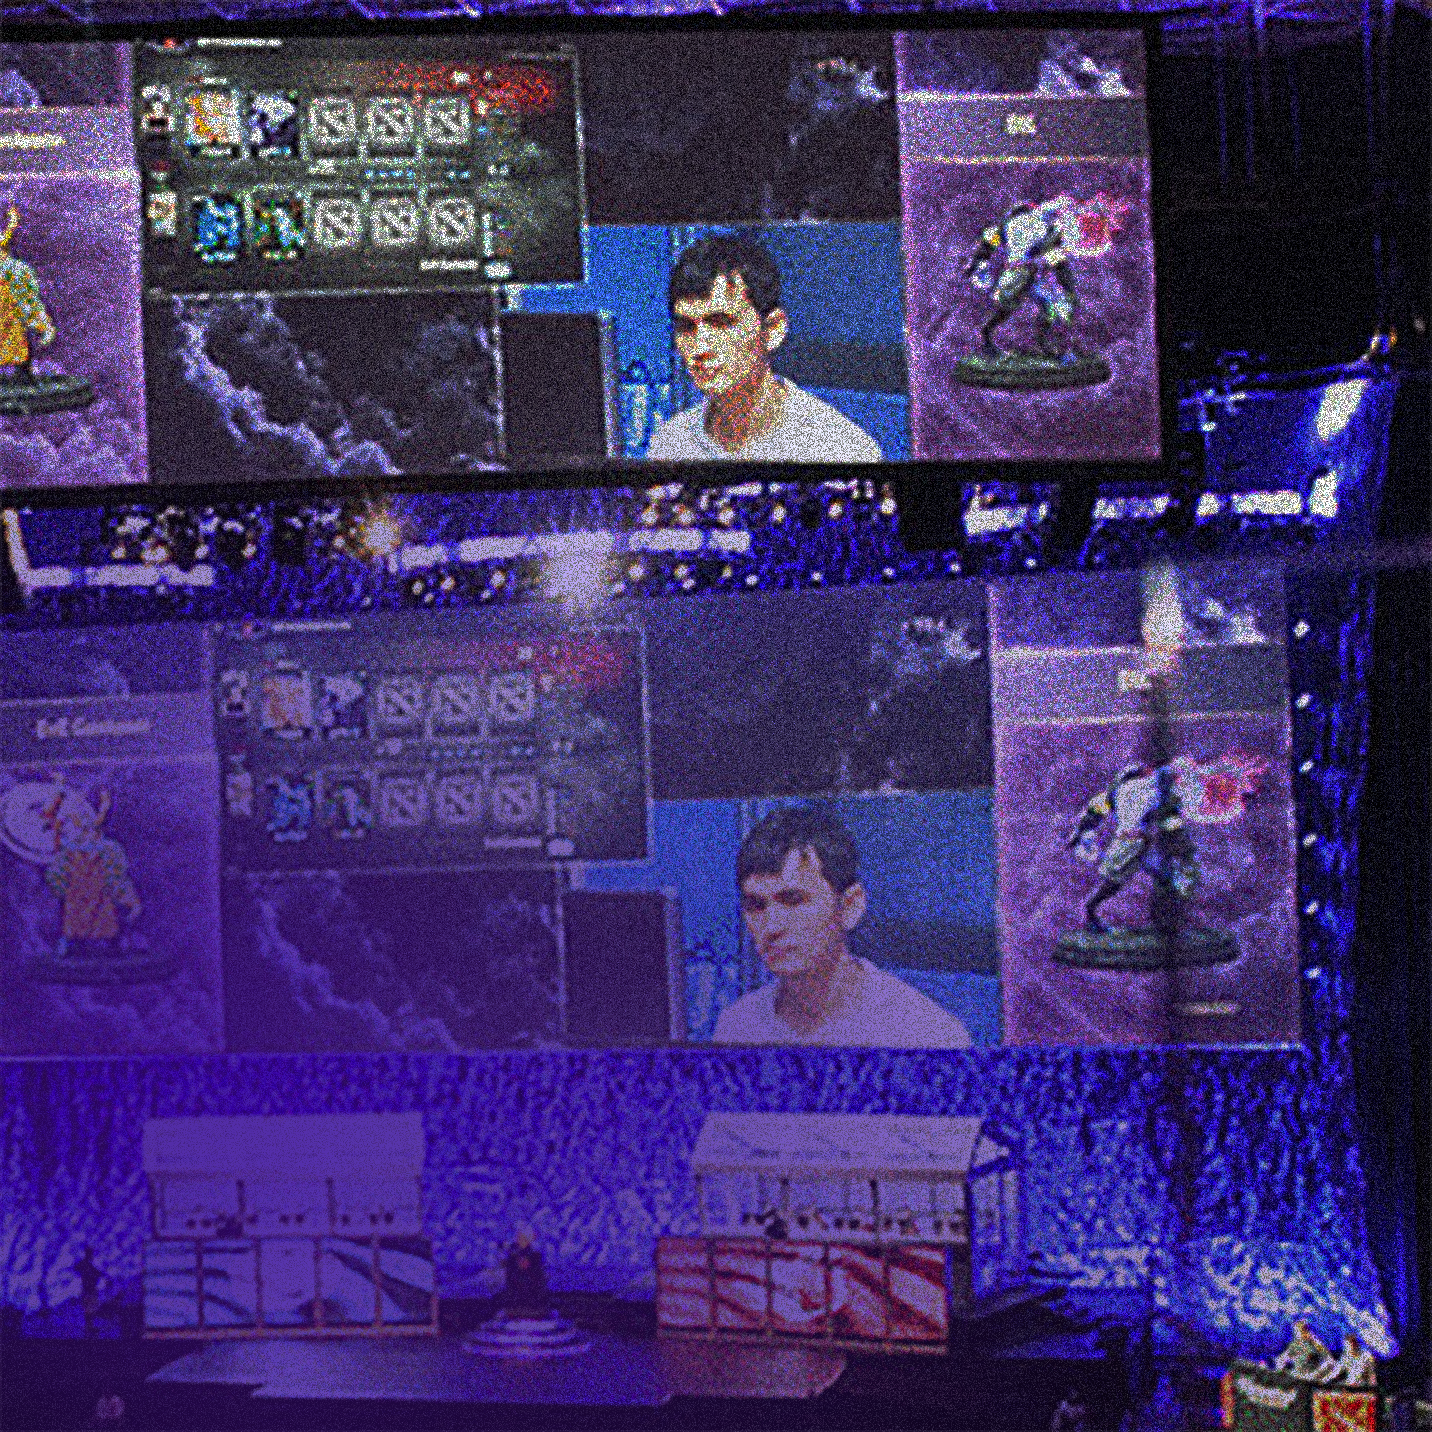 are sports and esports friends or foes? -